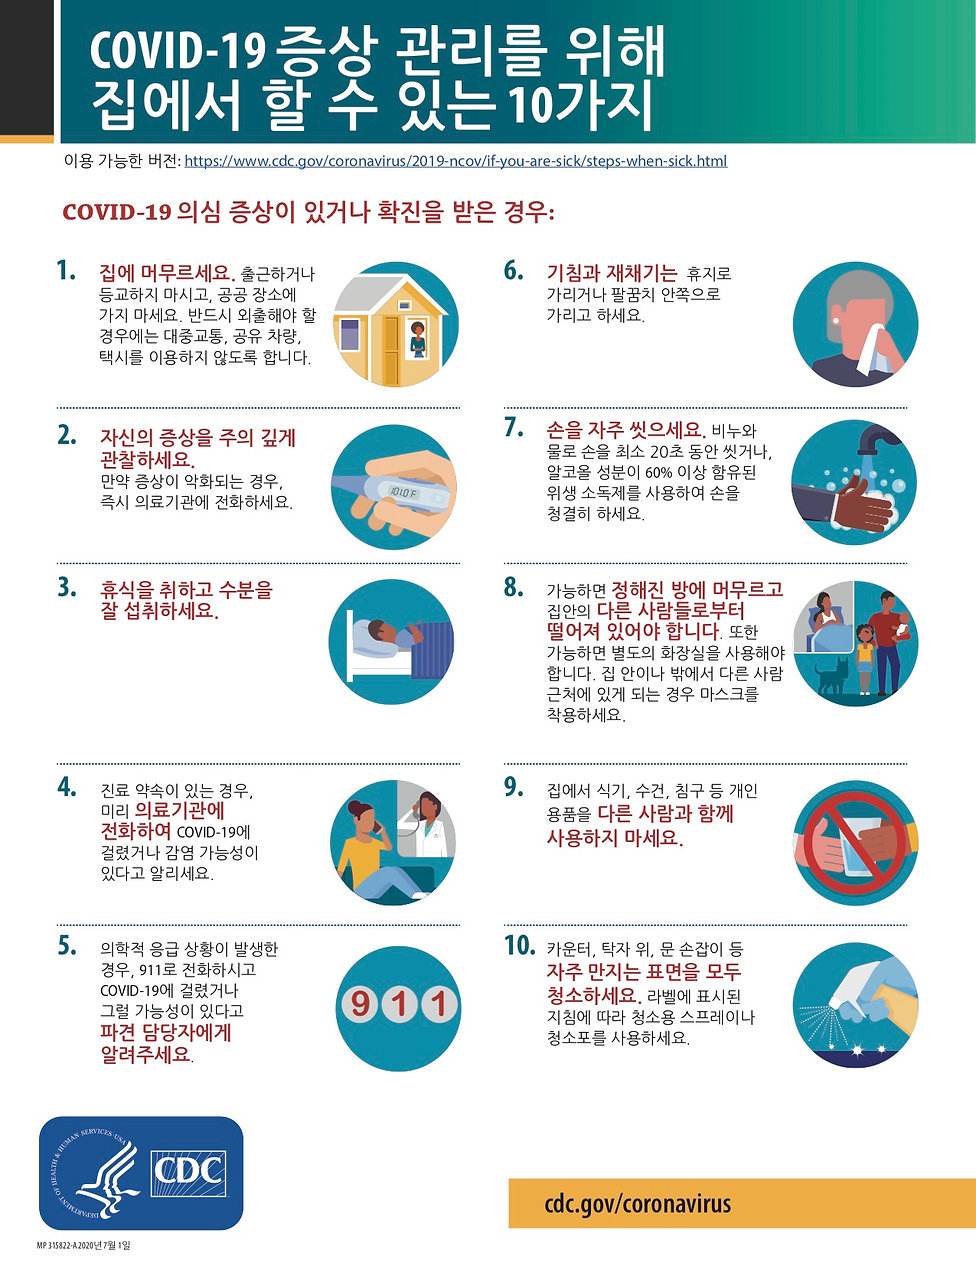 10Things-korean.jpg